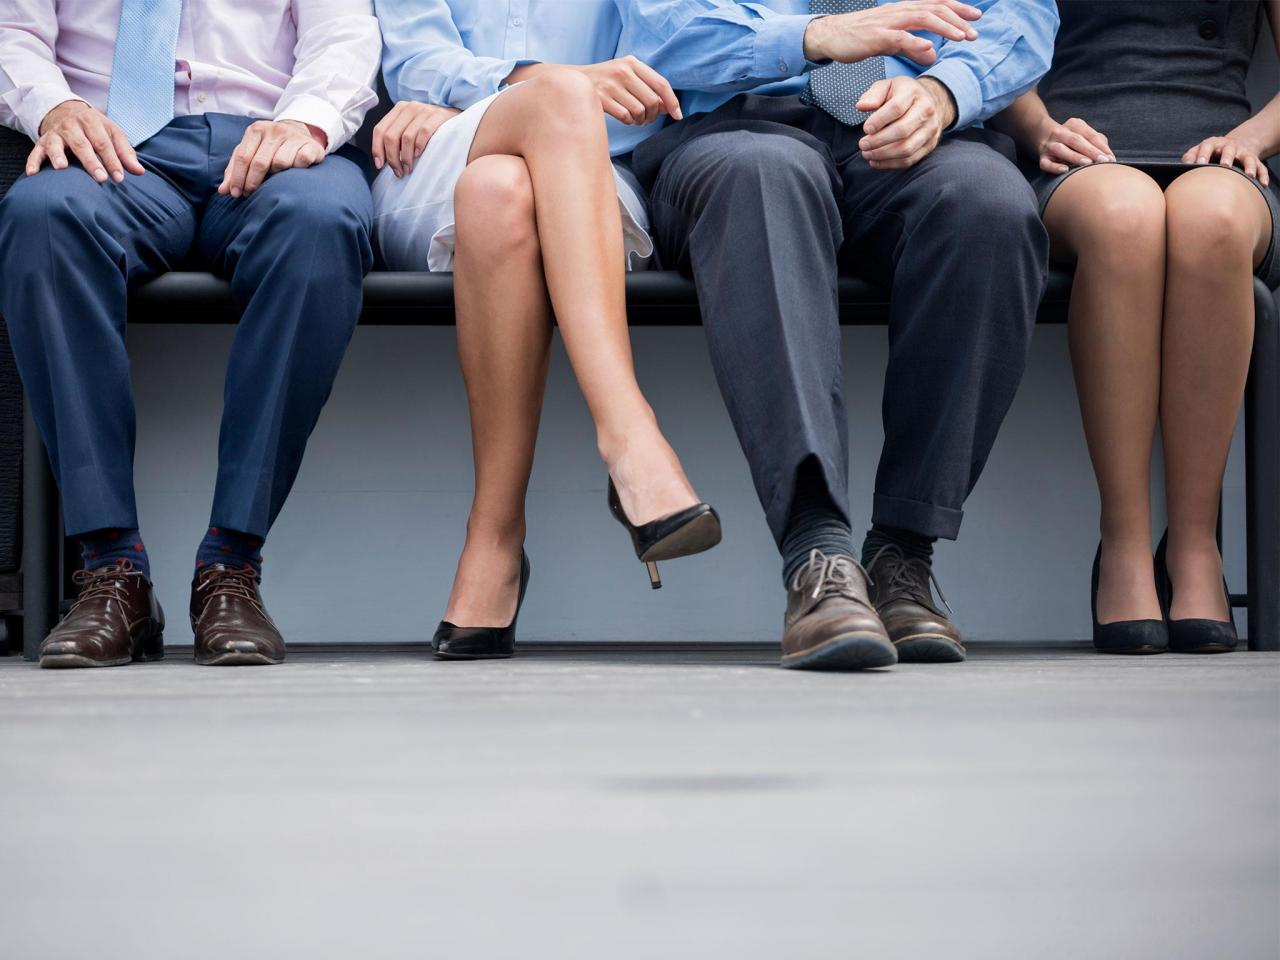 Gender pay gap: Survey reveals women expect less than men in order to be 'successful' | The Independent | The Independent